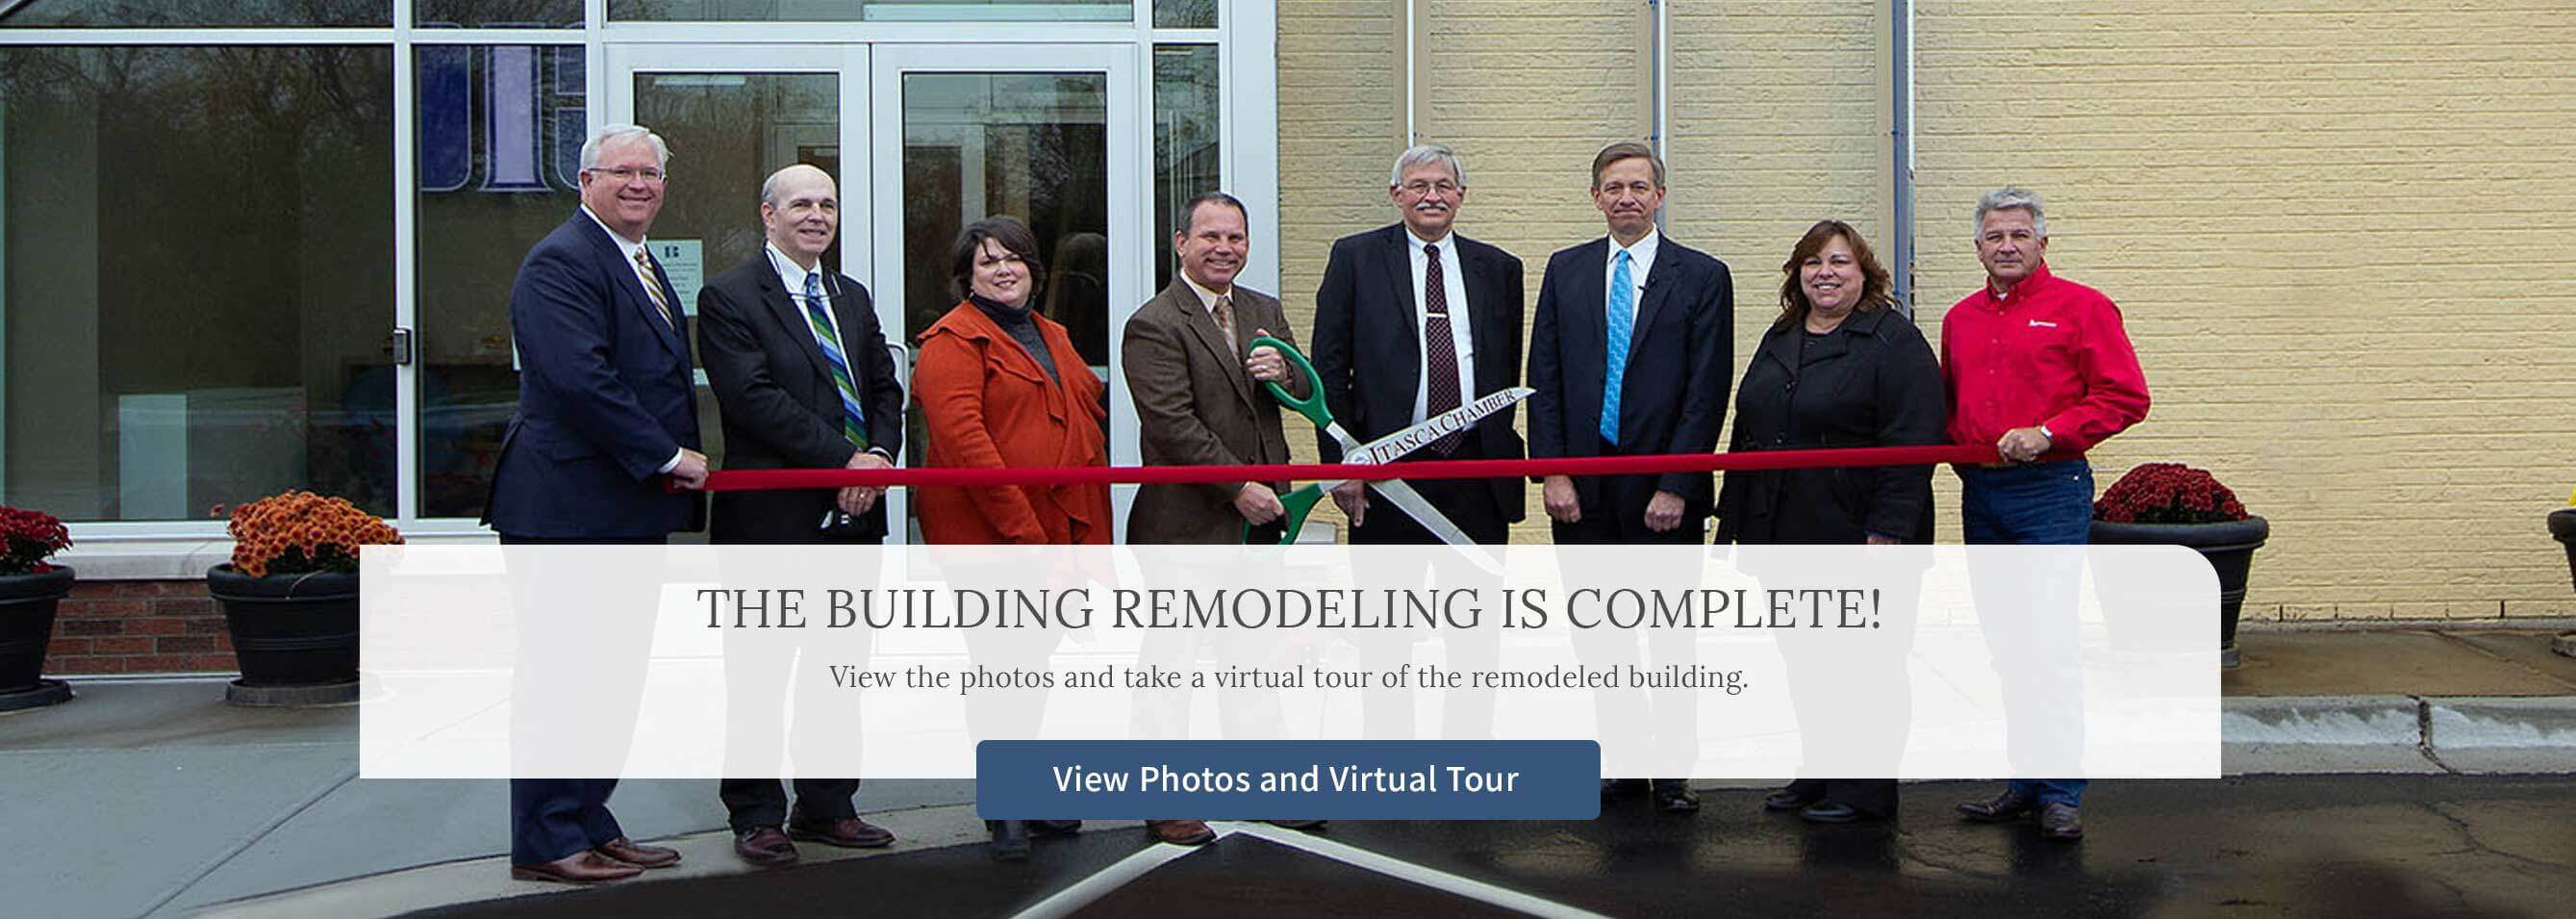 The building remodeling is complete! View the photos and take a virtual tour of the remodeled building. View photos and virtual tour.